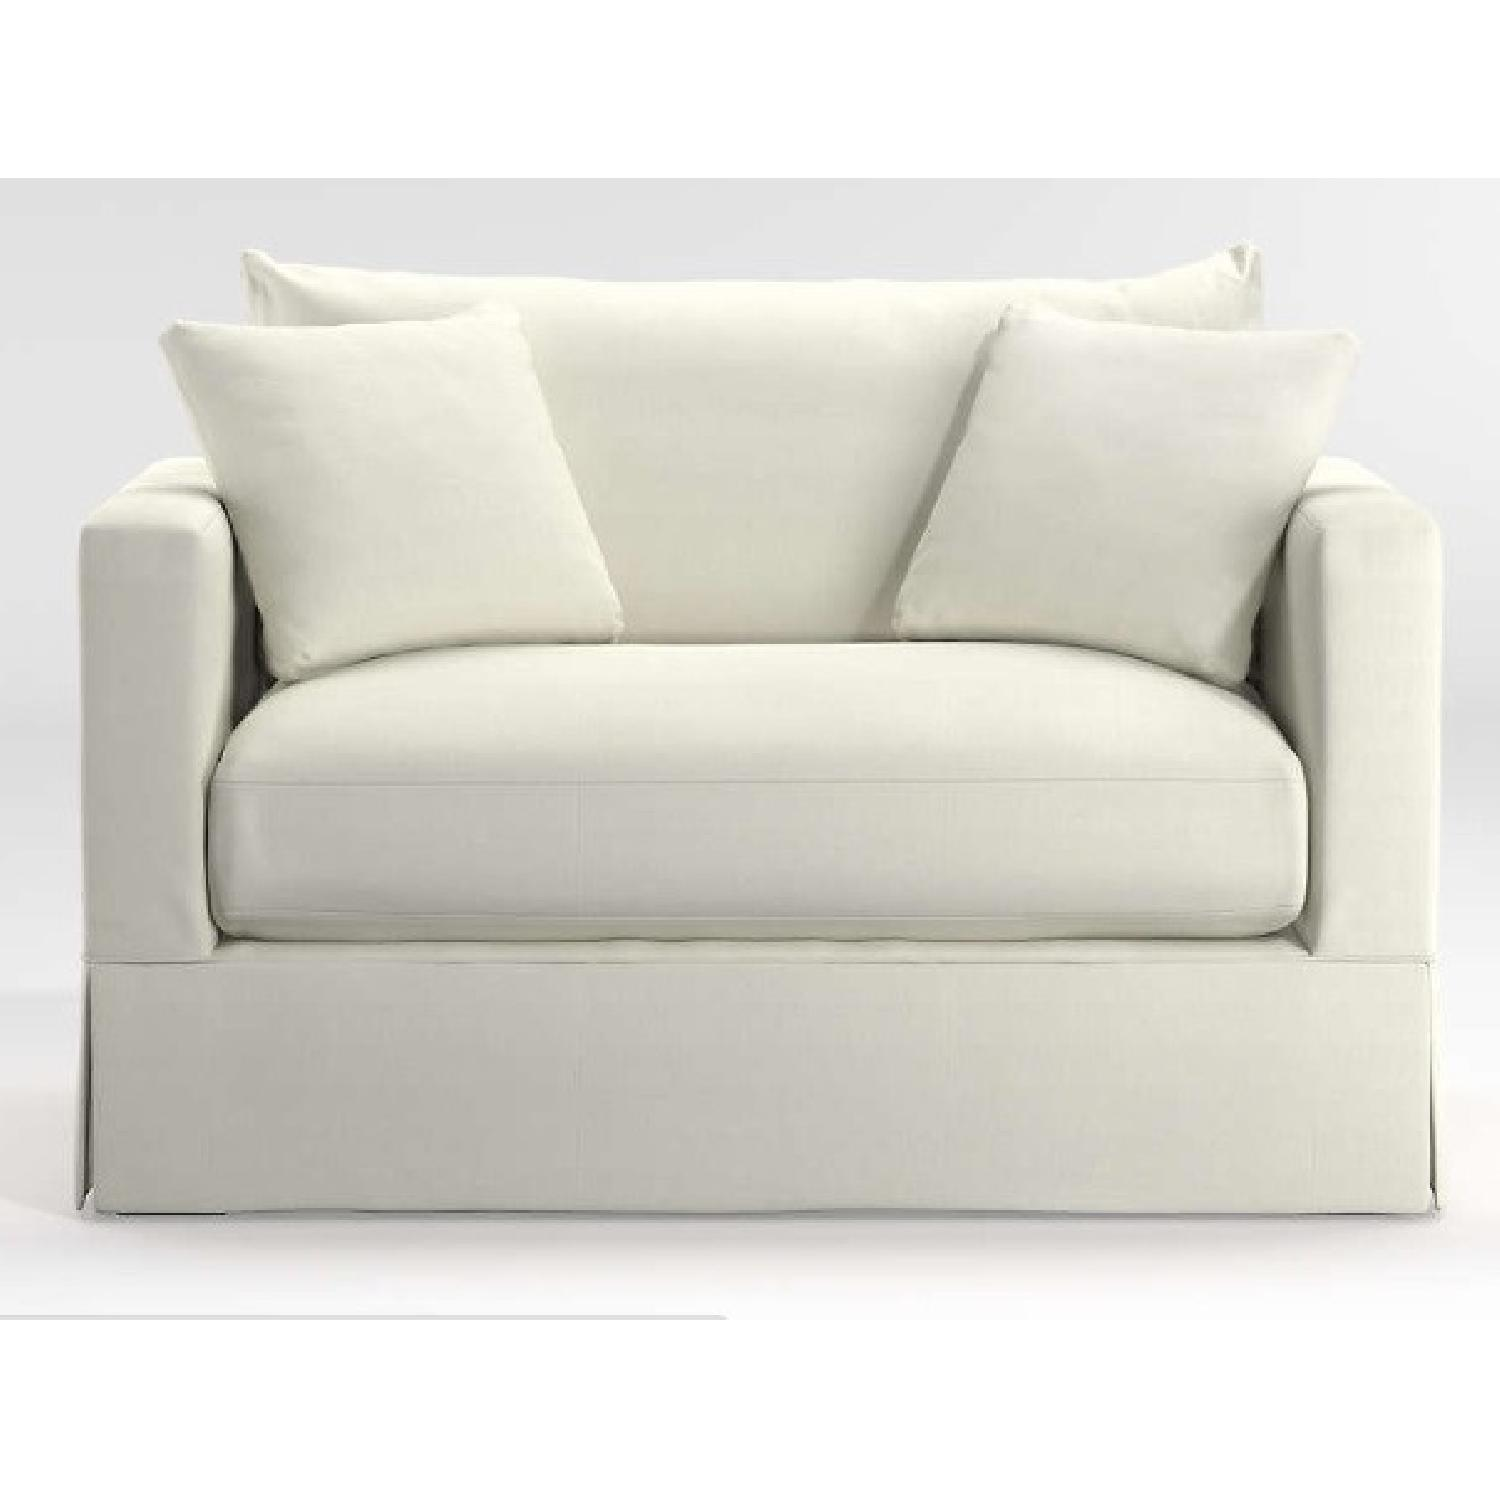 Crate & Barrel Extra Large White Linen Chair - image-5